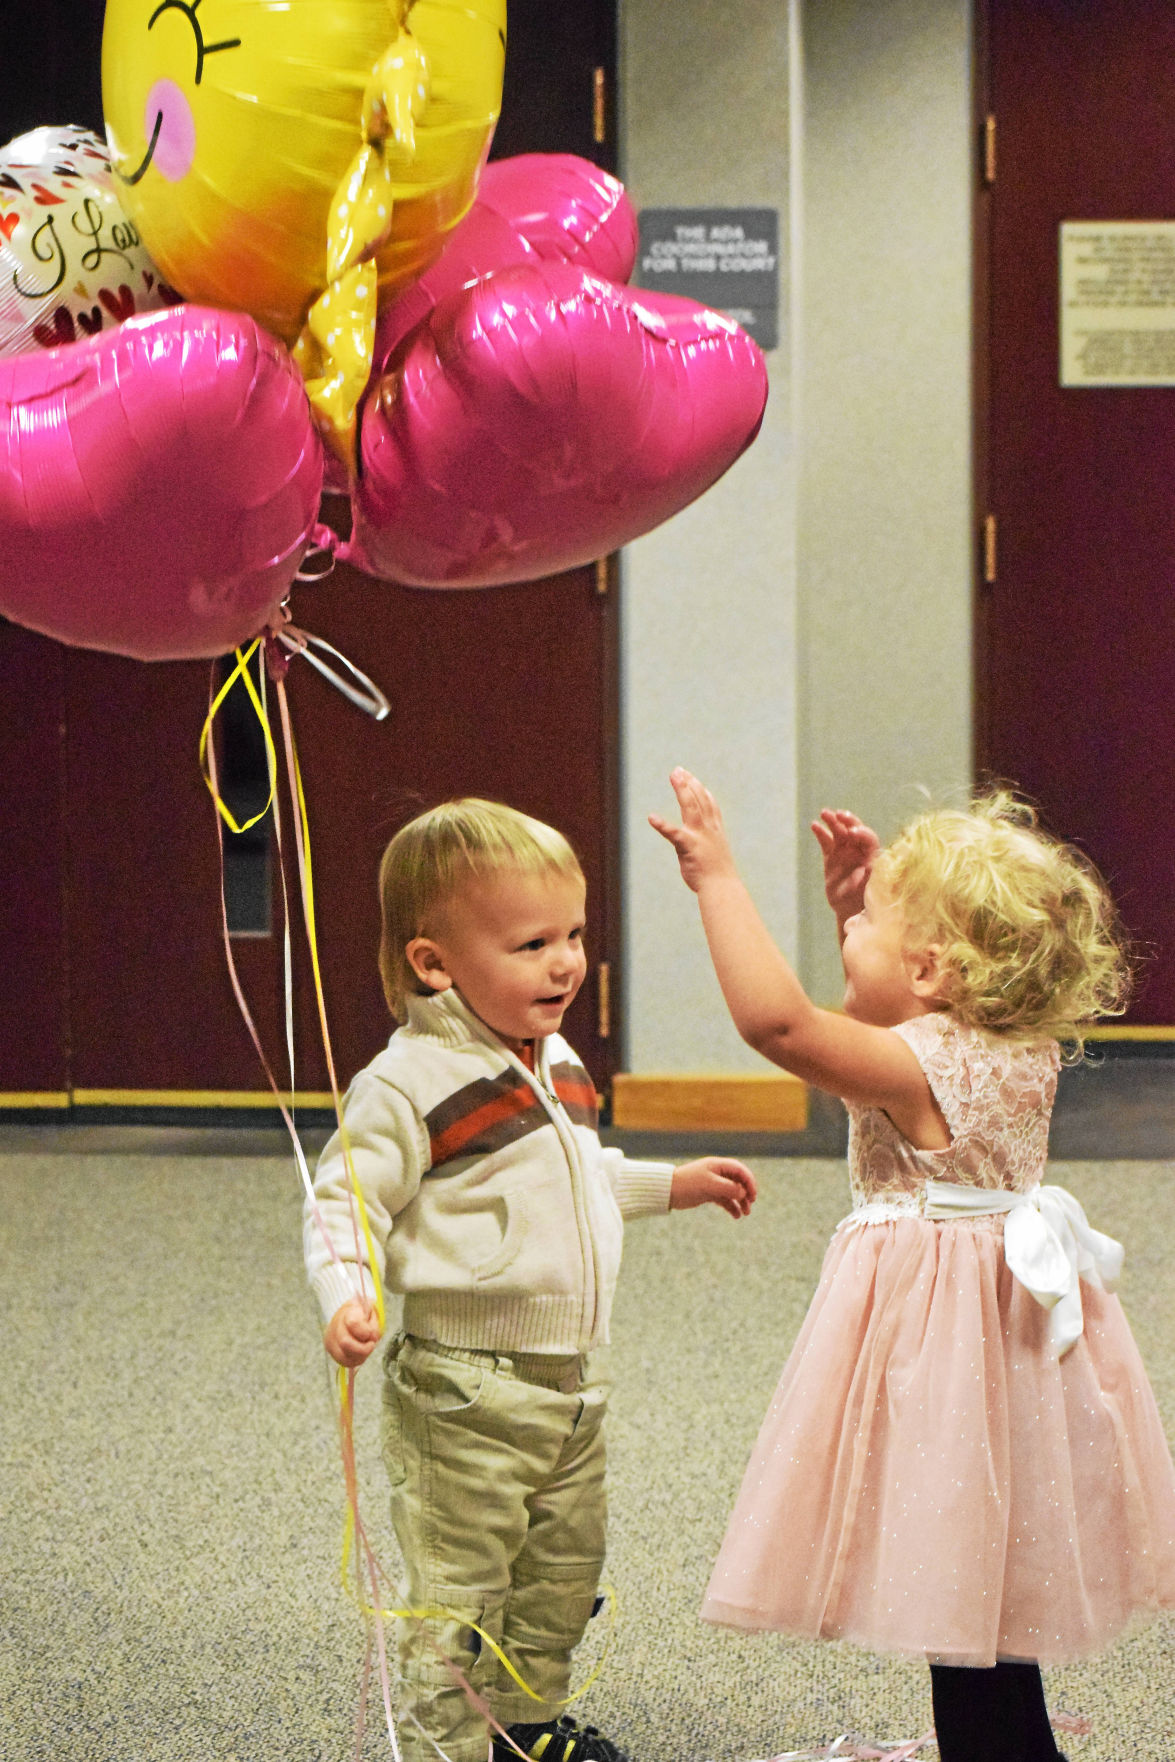 Adoptions celebrated at Macomb County court